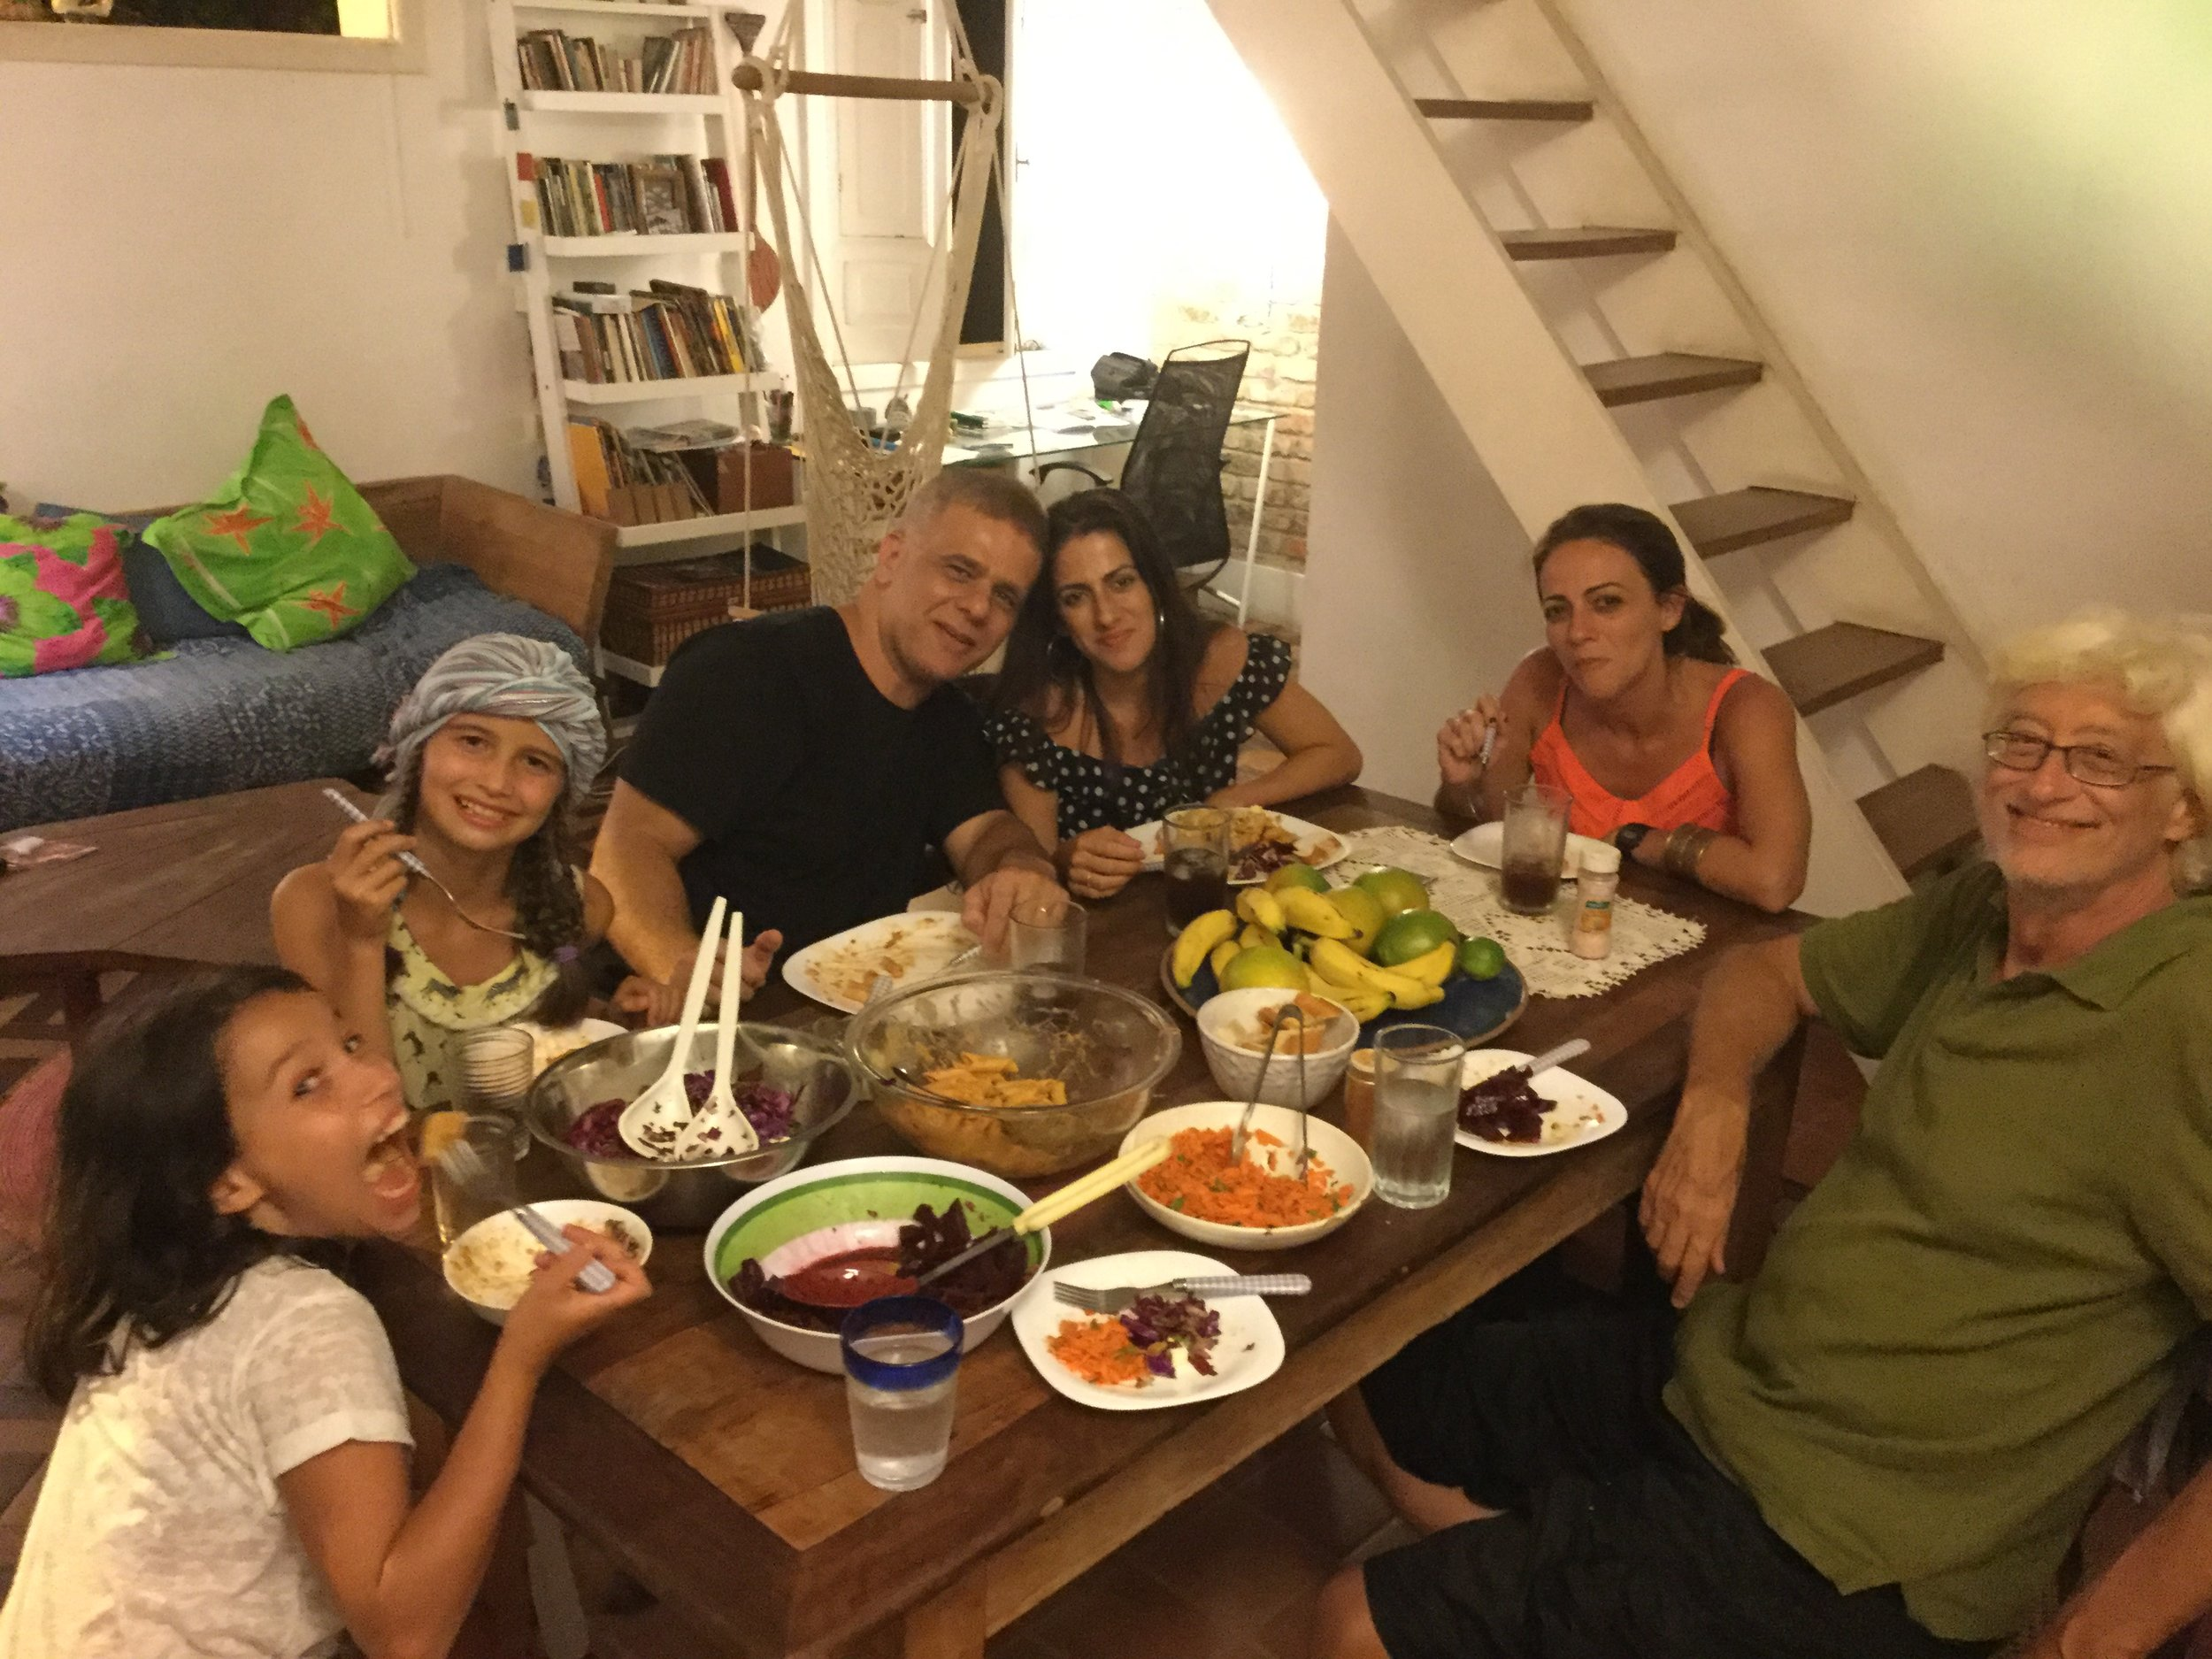 Isabela, Lili, TT, Lais, Laura and Dante. Lais (TT's wife) and Laura are sisters.